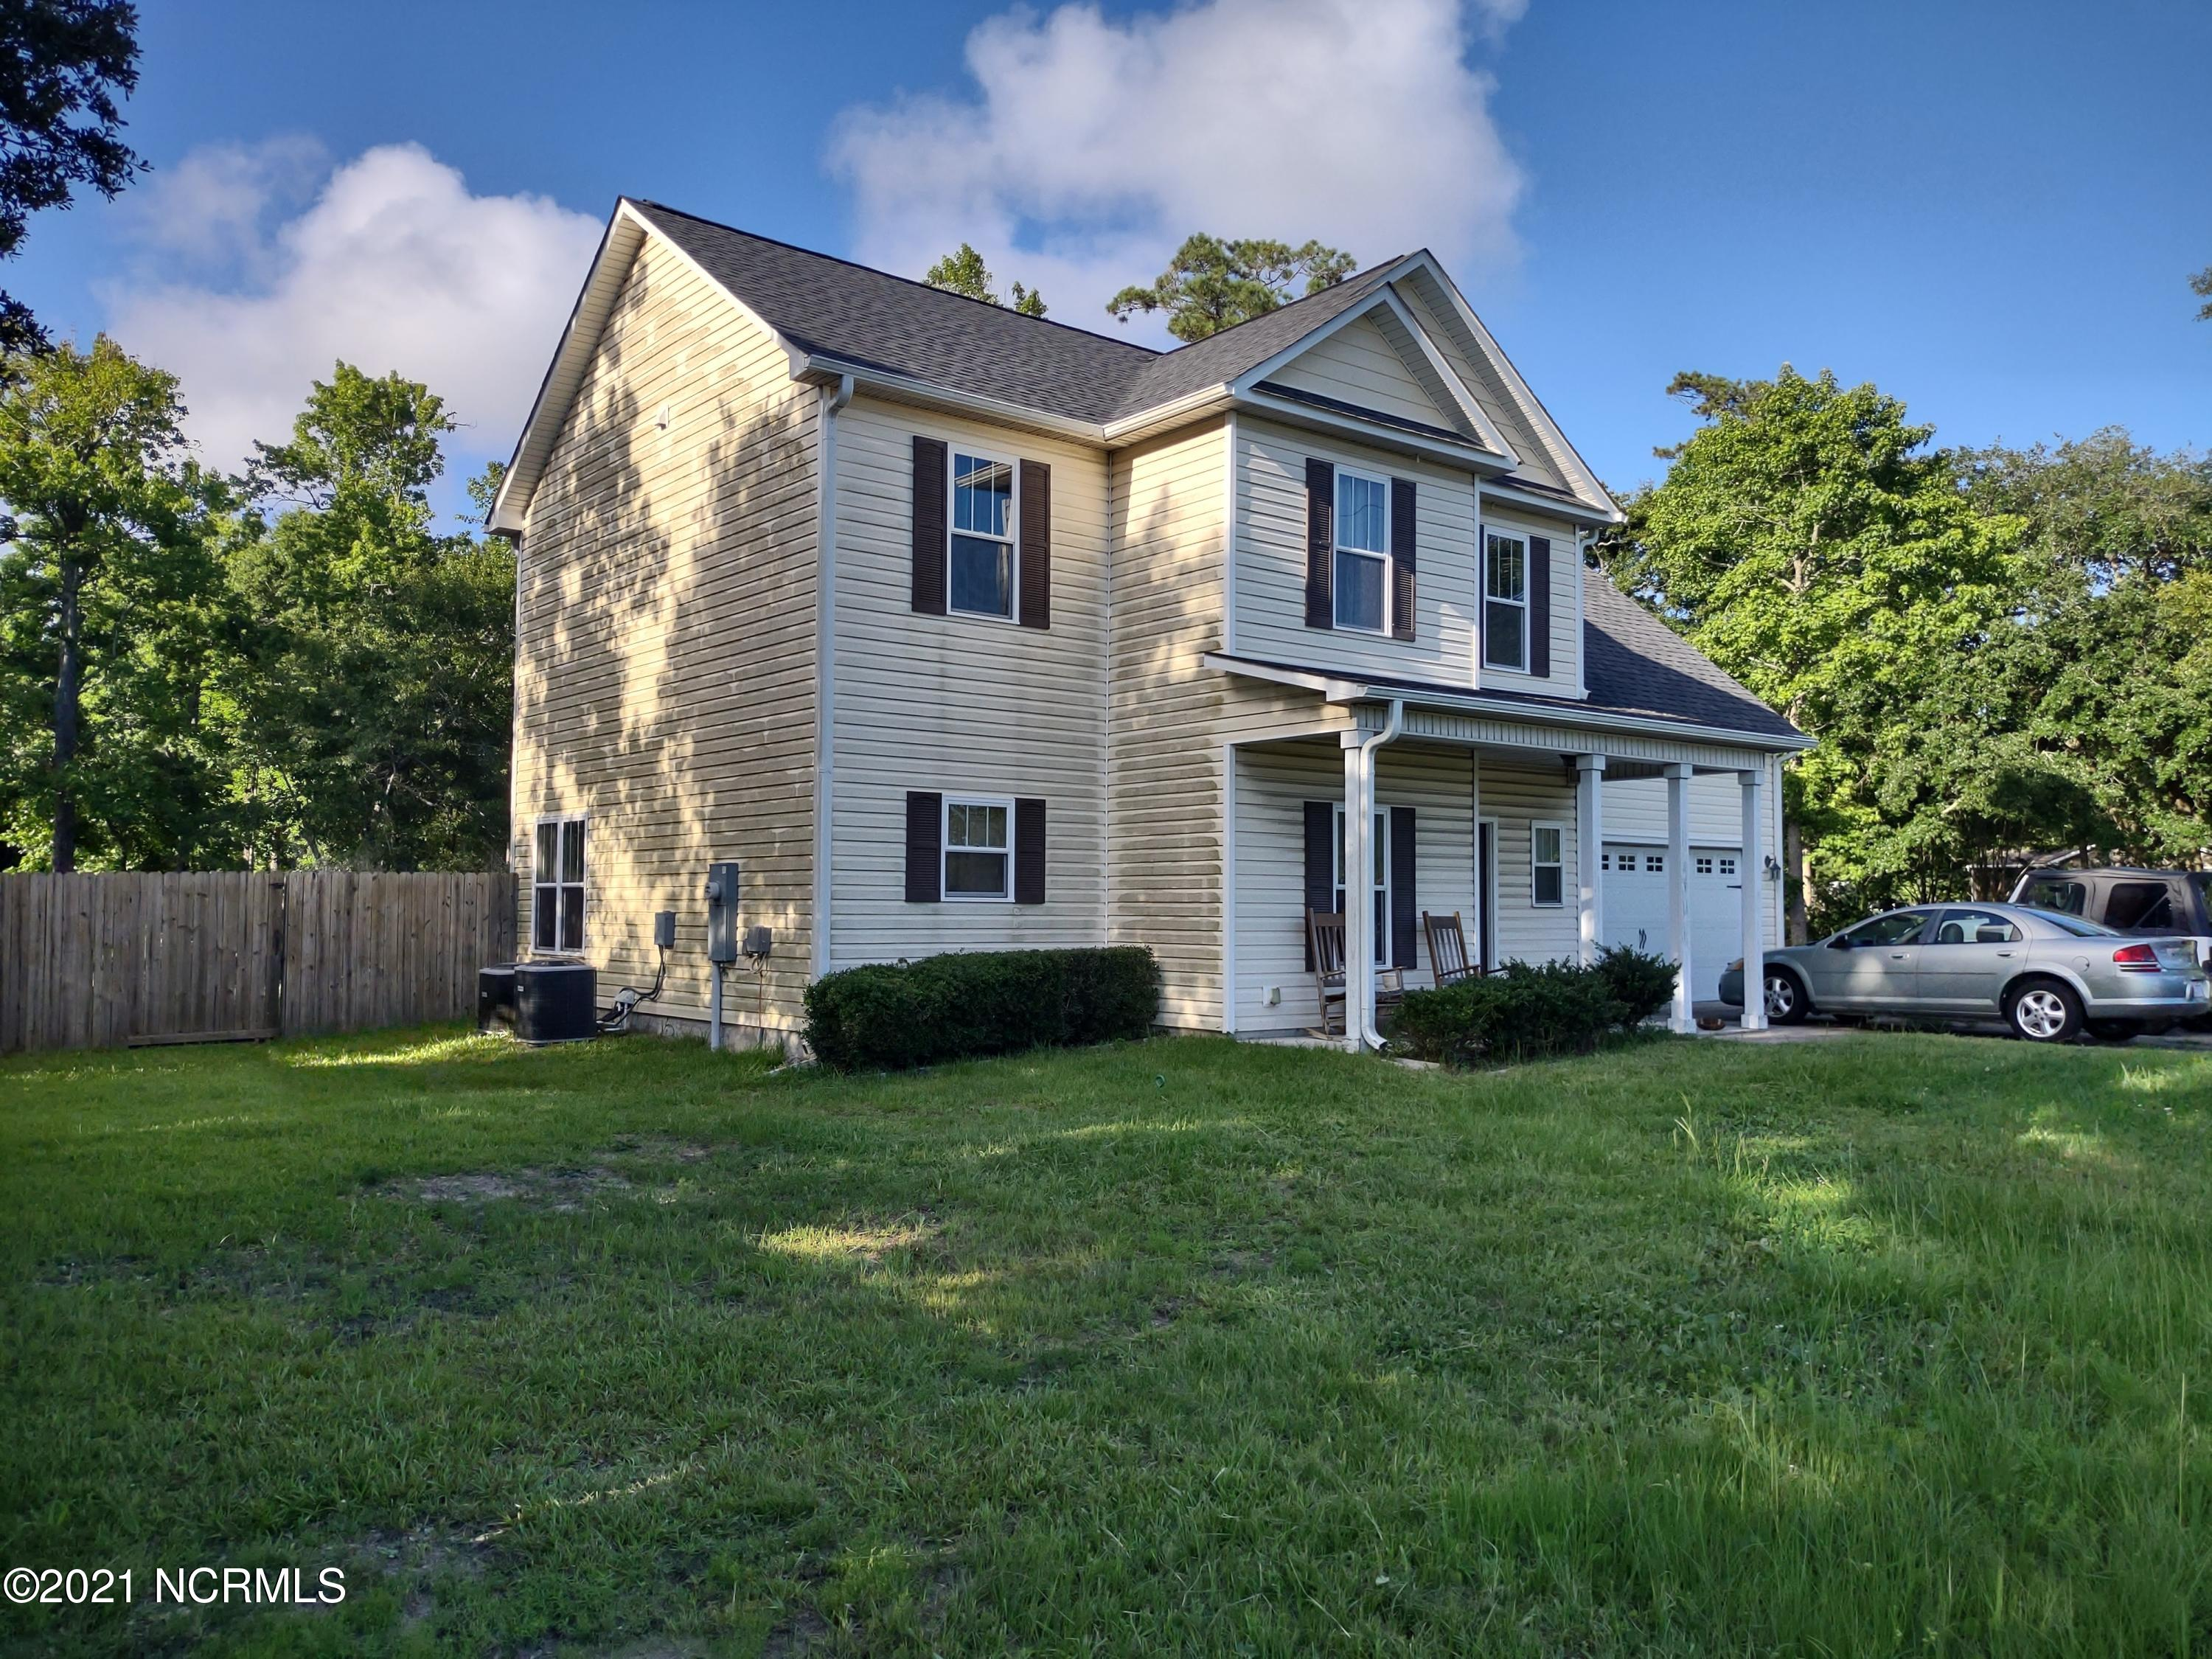 261 Chadwick Acres Road, Sneads Ferry, North Carolina 28460, 3 Bedrooms Bedrooms, 10 Rooms Rooms,2 BathroomsBathrooms,Single family residence,For sale,Chadwick Acres,100279490